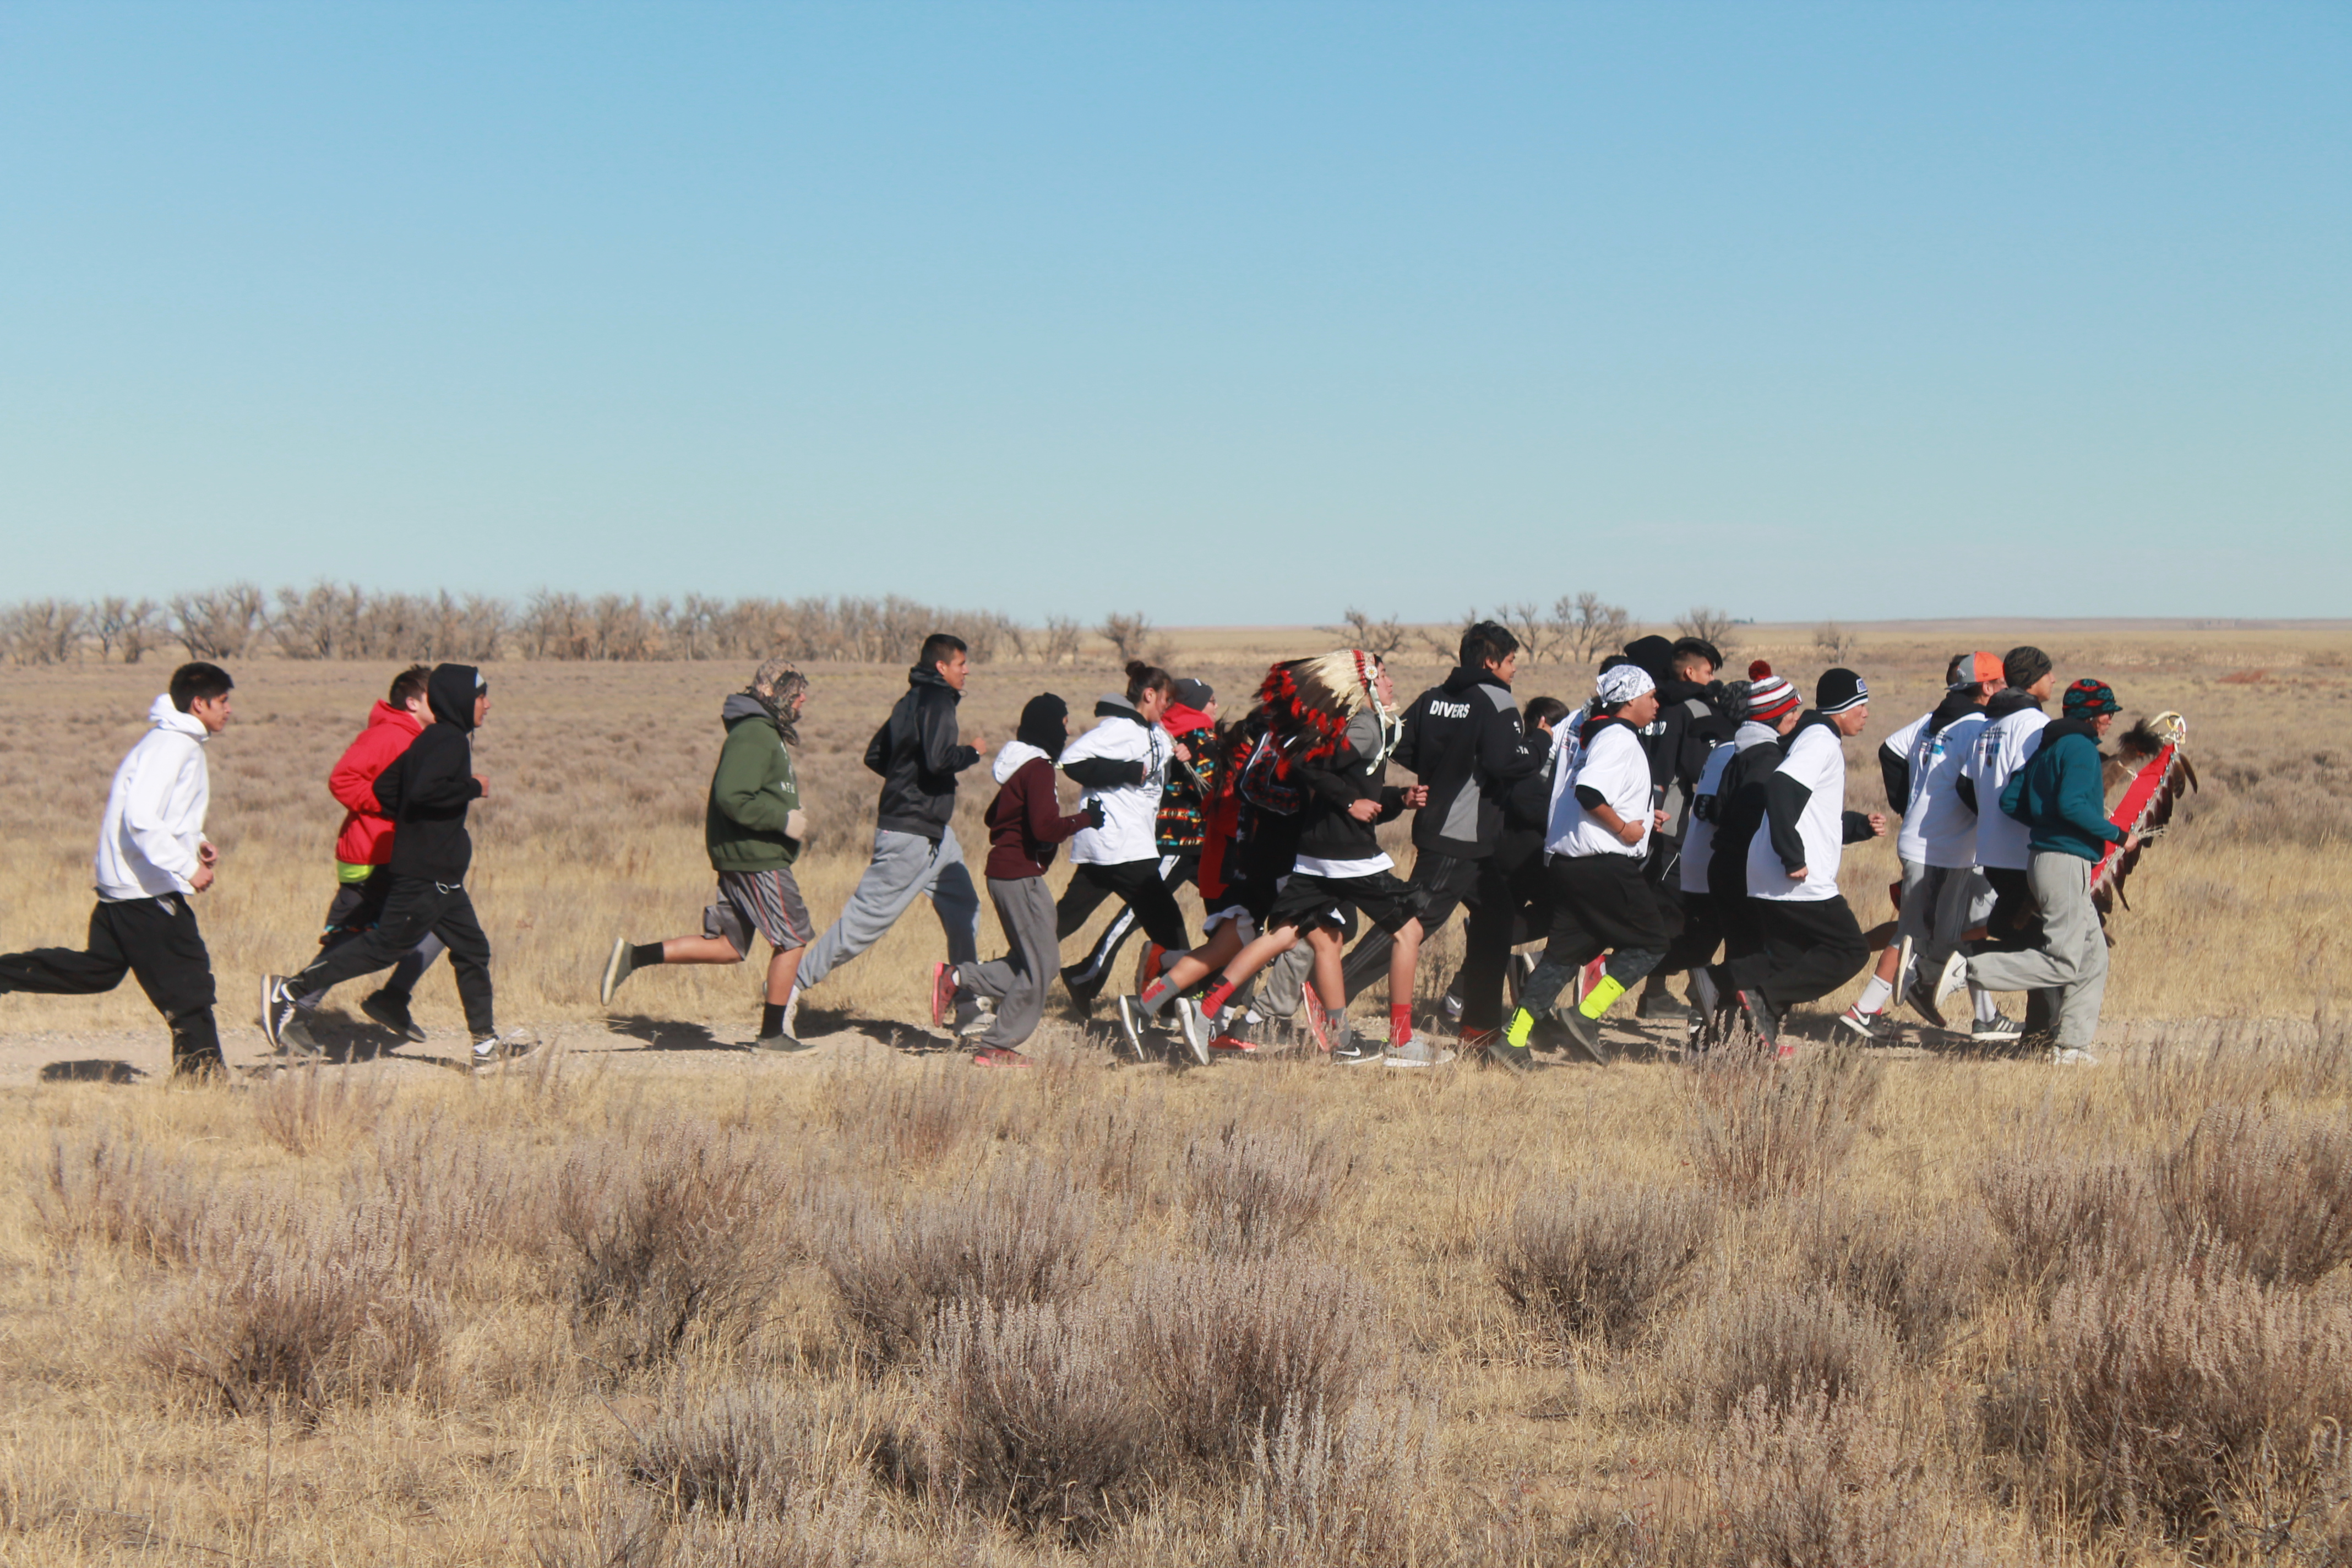 Annual Spiritual Healing Run-Walk - Sand Creek Macre ... on